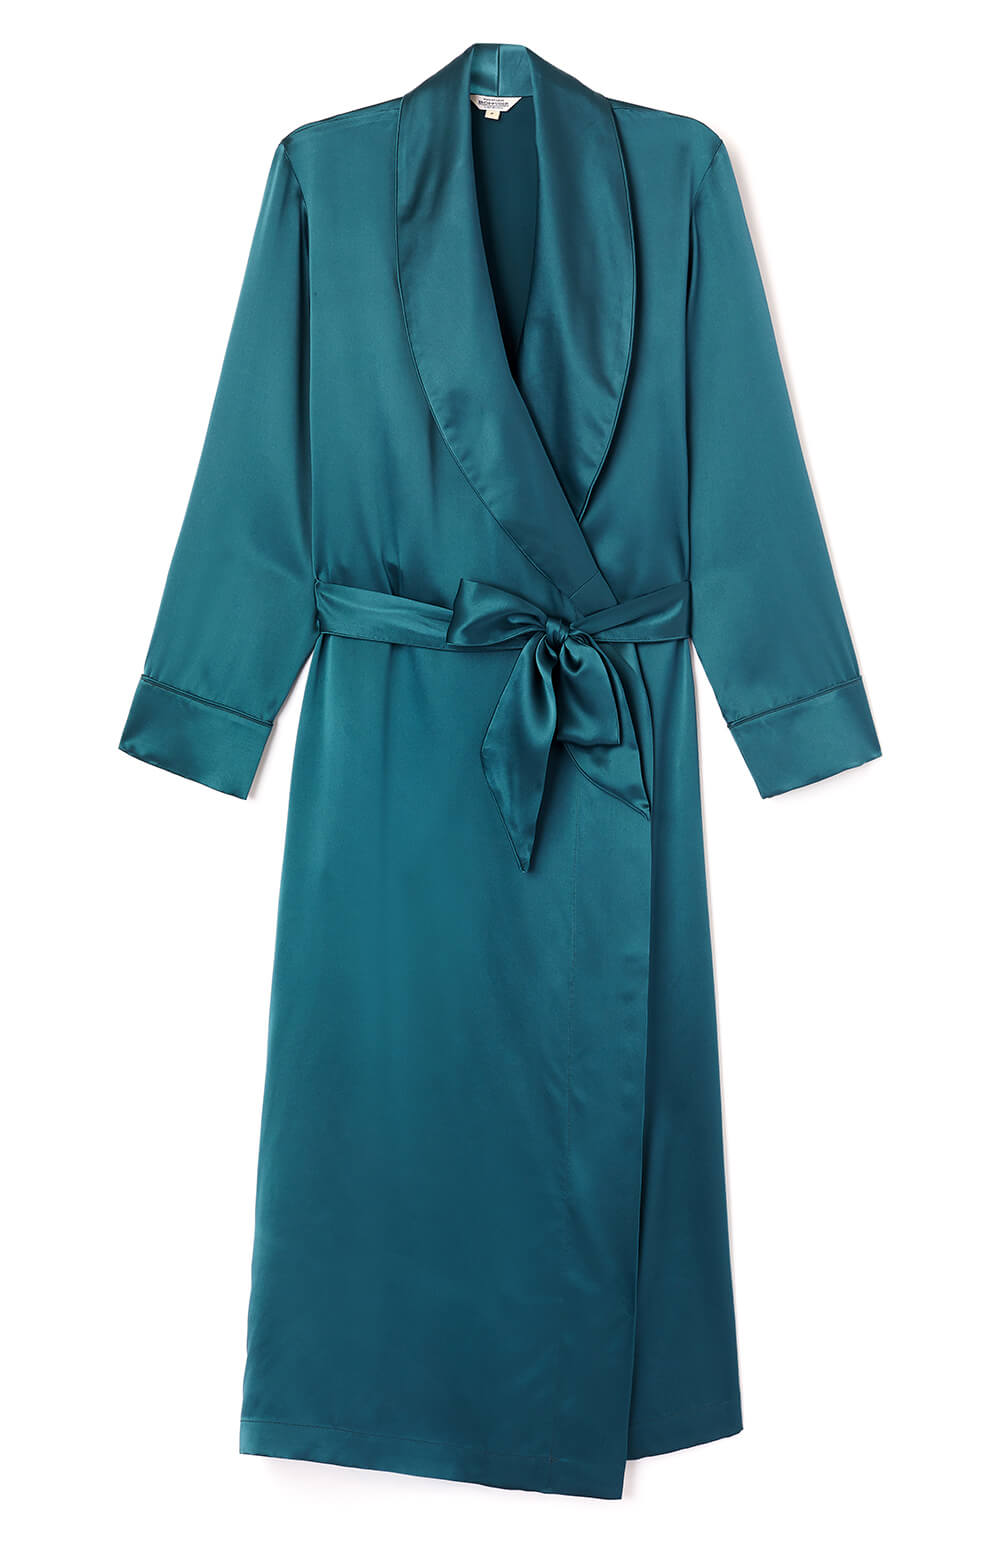 Silk Gown Teal Bonsoir of London Luxury Handcrafted Nightwear (3b14)